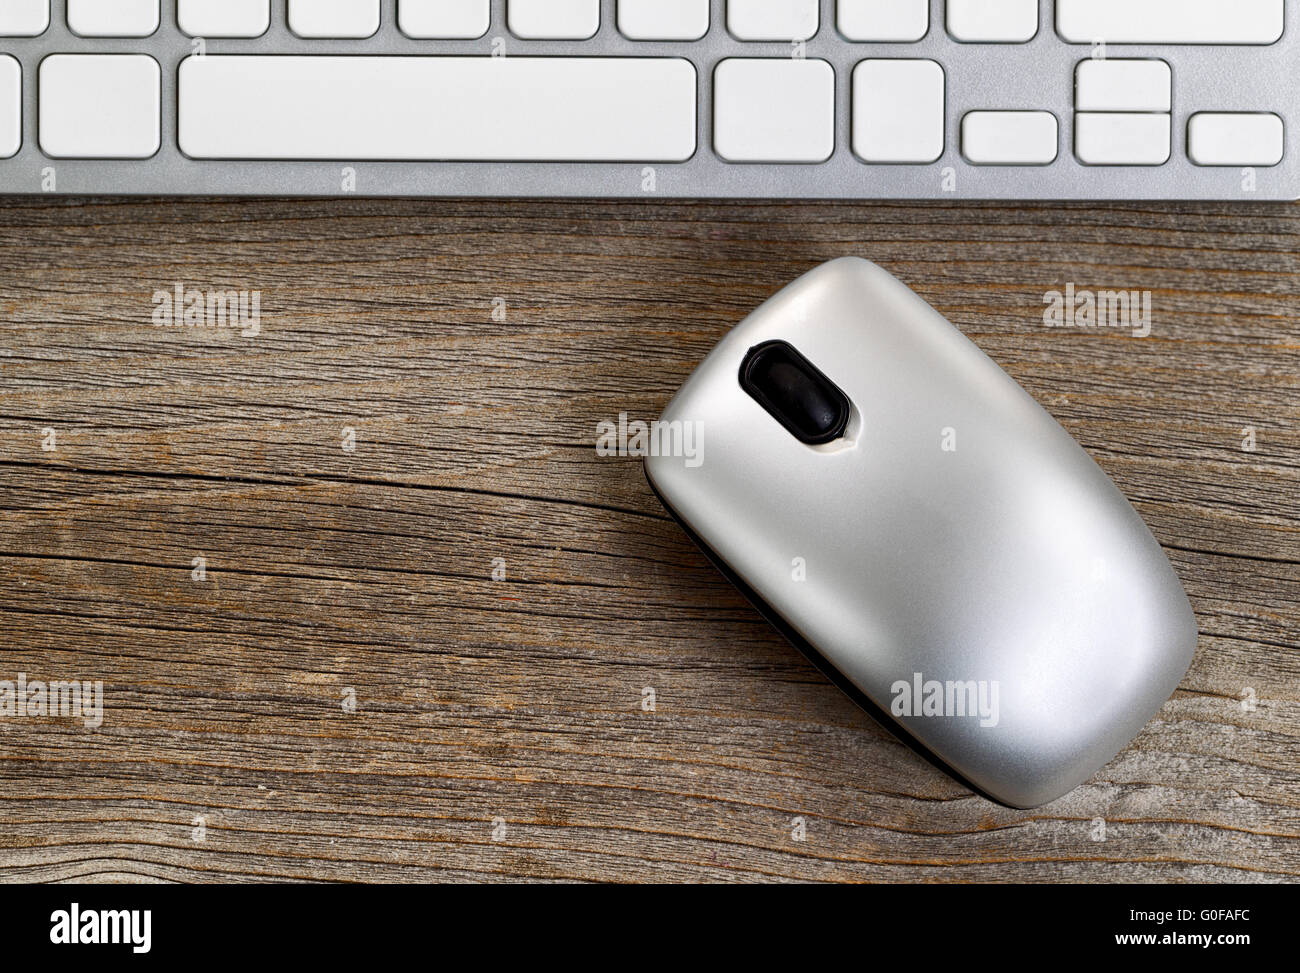 Wireless portable computer mouse with keyboard on rustic wooden desktop - Stock Image